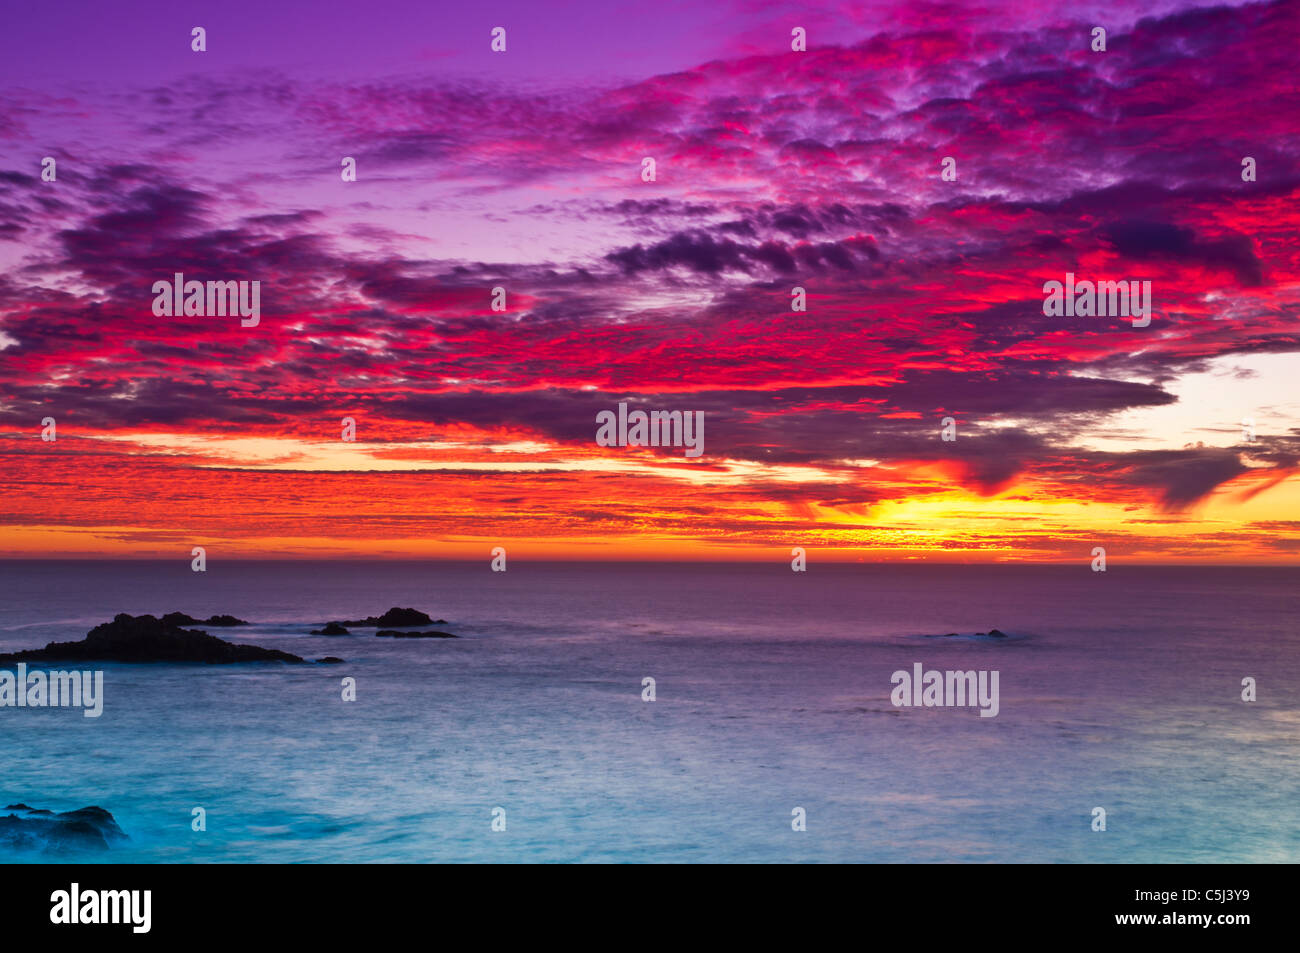 Sunset over the Pacific Ocean, Point Lobos State Reserve, Carmel, California - Stock Image